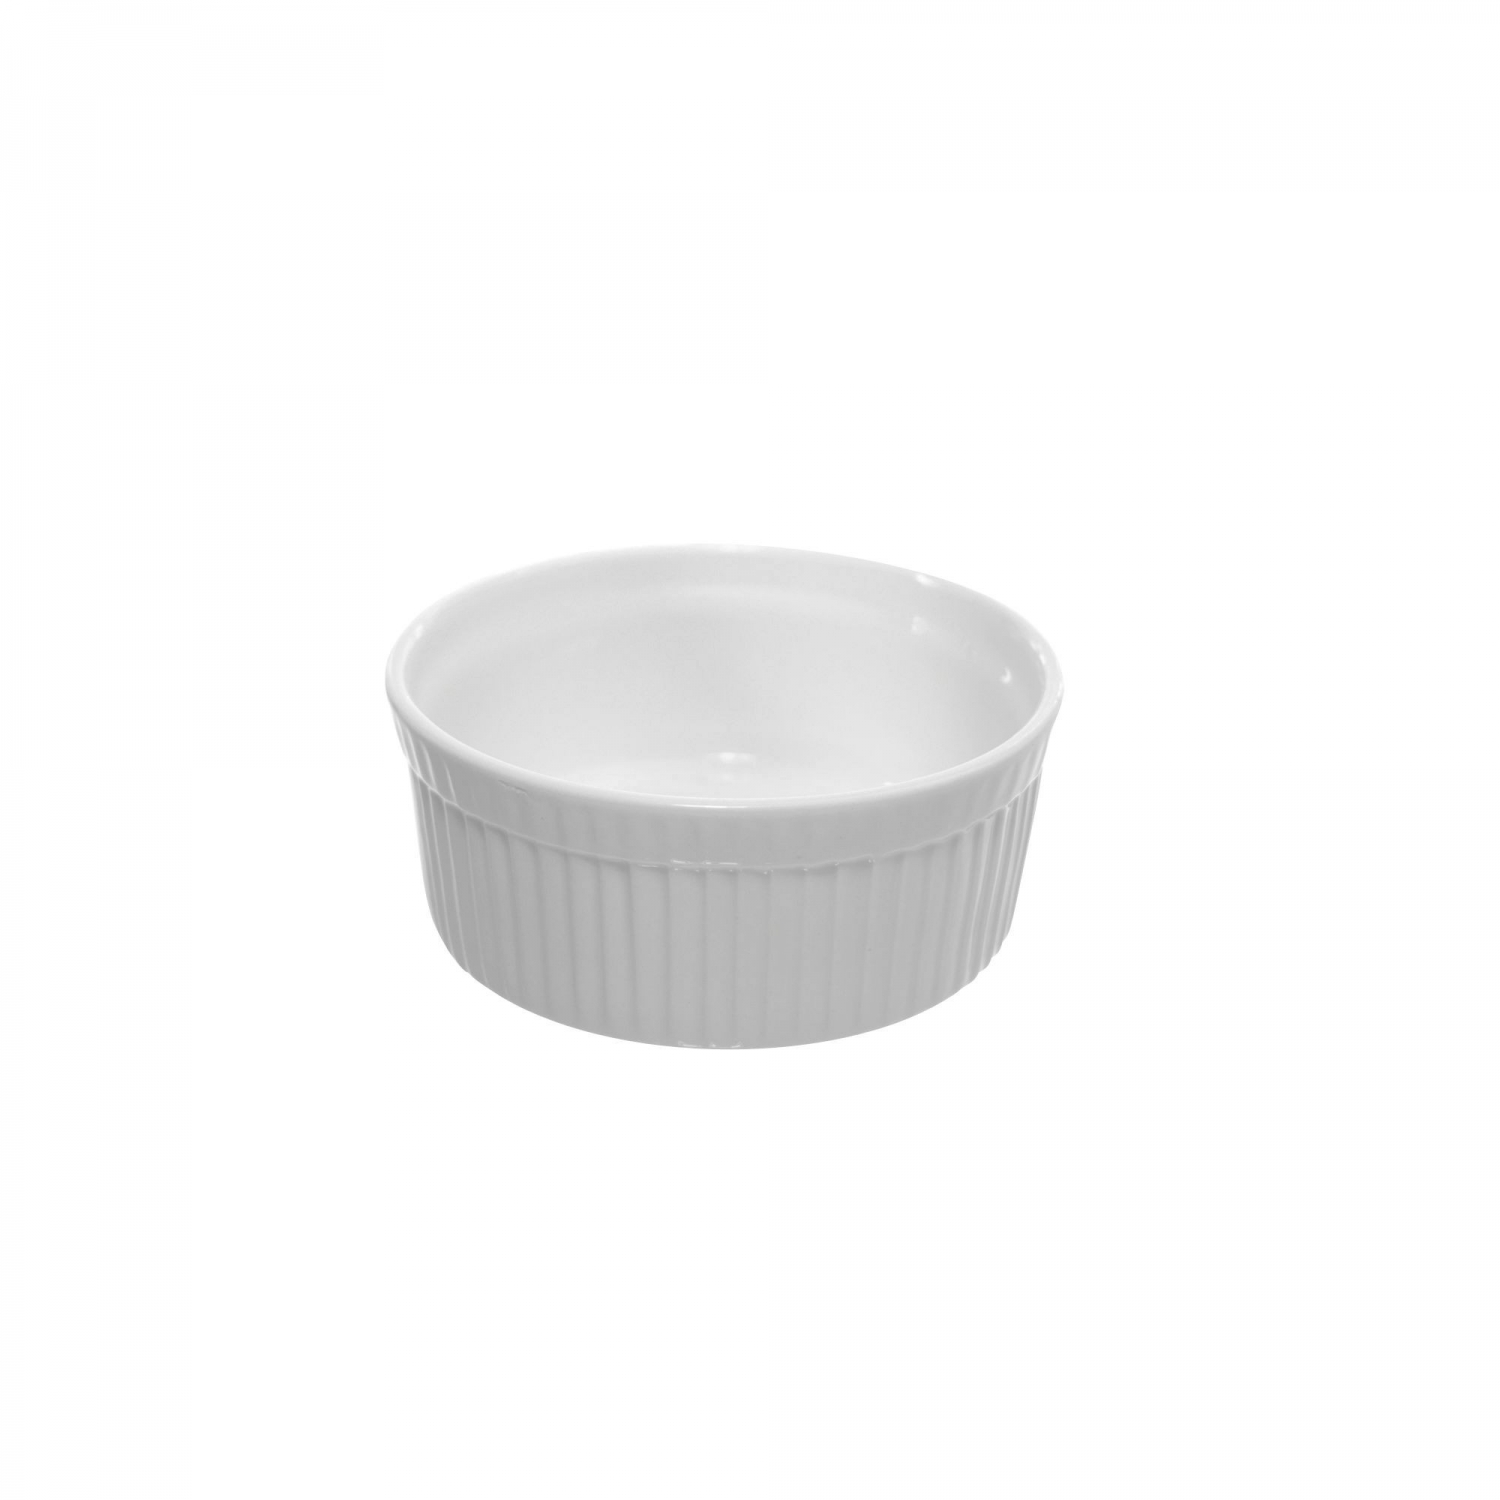 10 Strawberry Street WTR-45SUF Whittier Ramekin 10 oz.